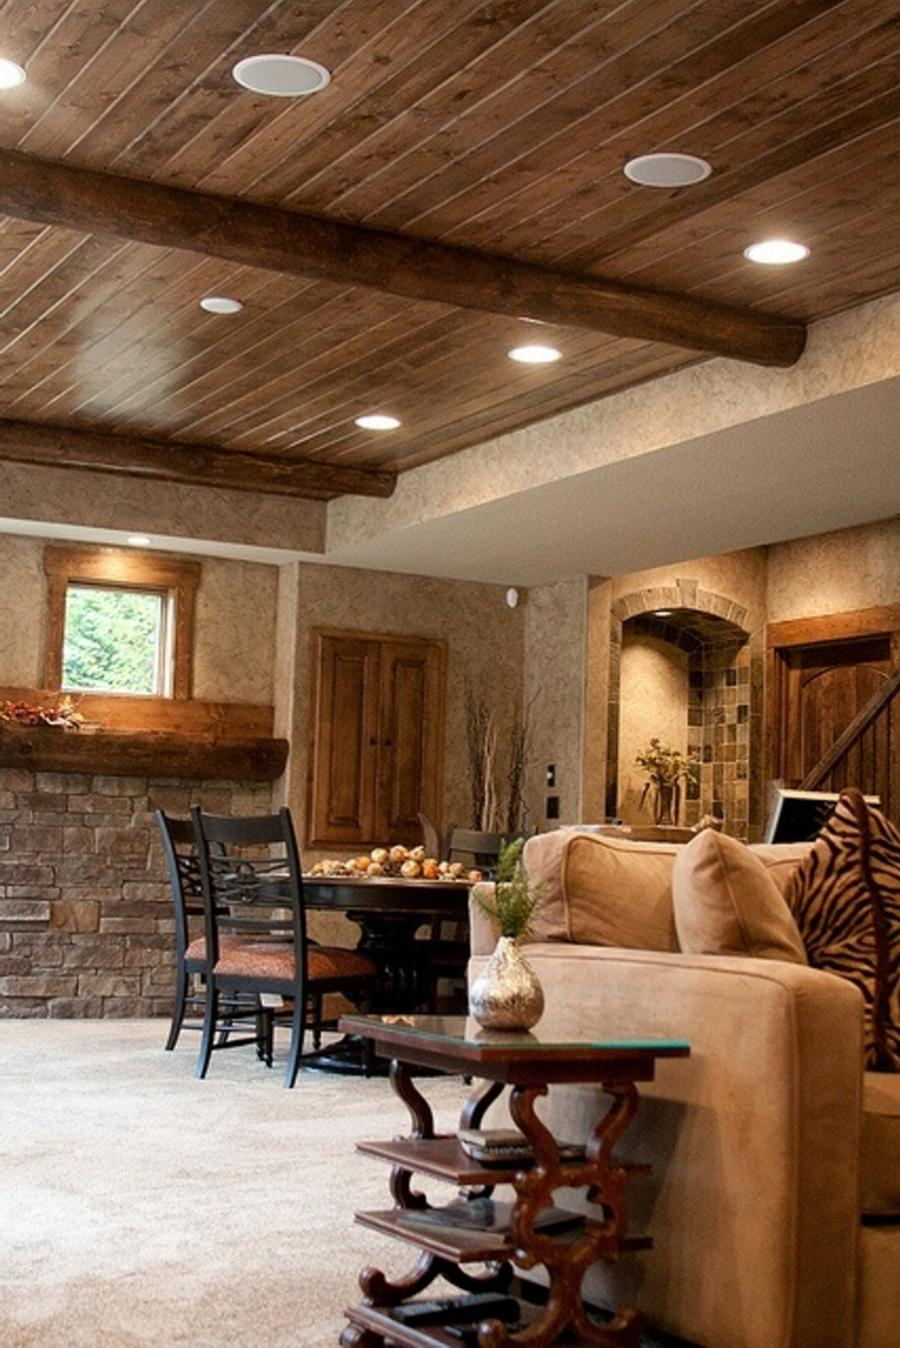 Retrieve living room rustic interior style with recessed lighting...